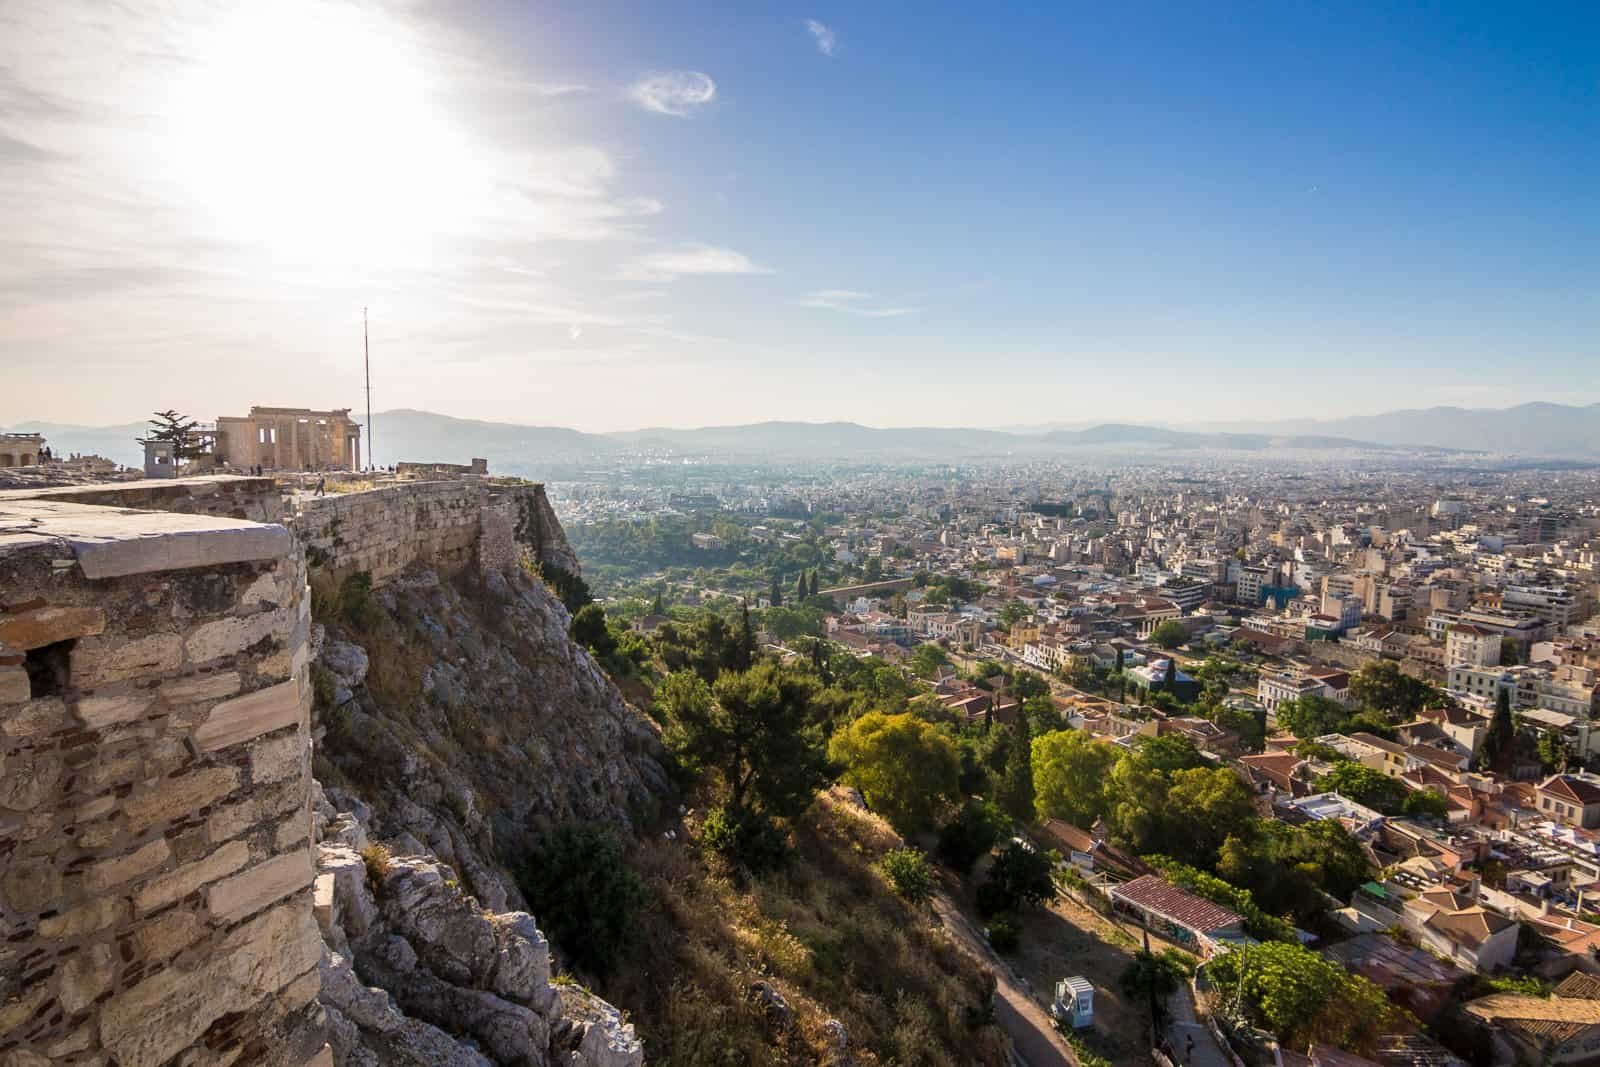 Aerial View of Athens, Pictures of Greece